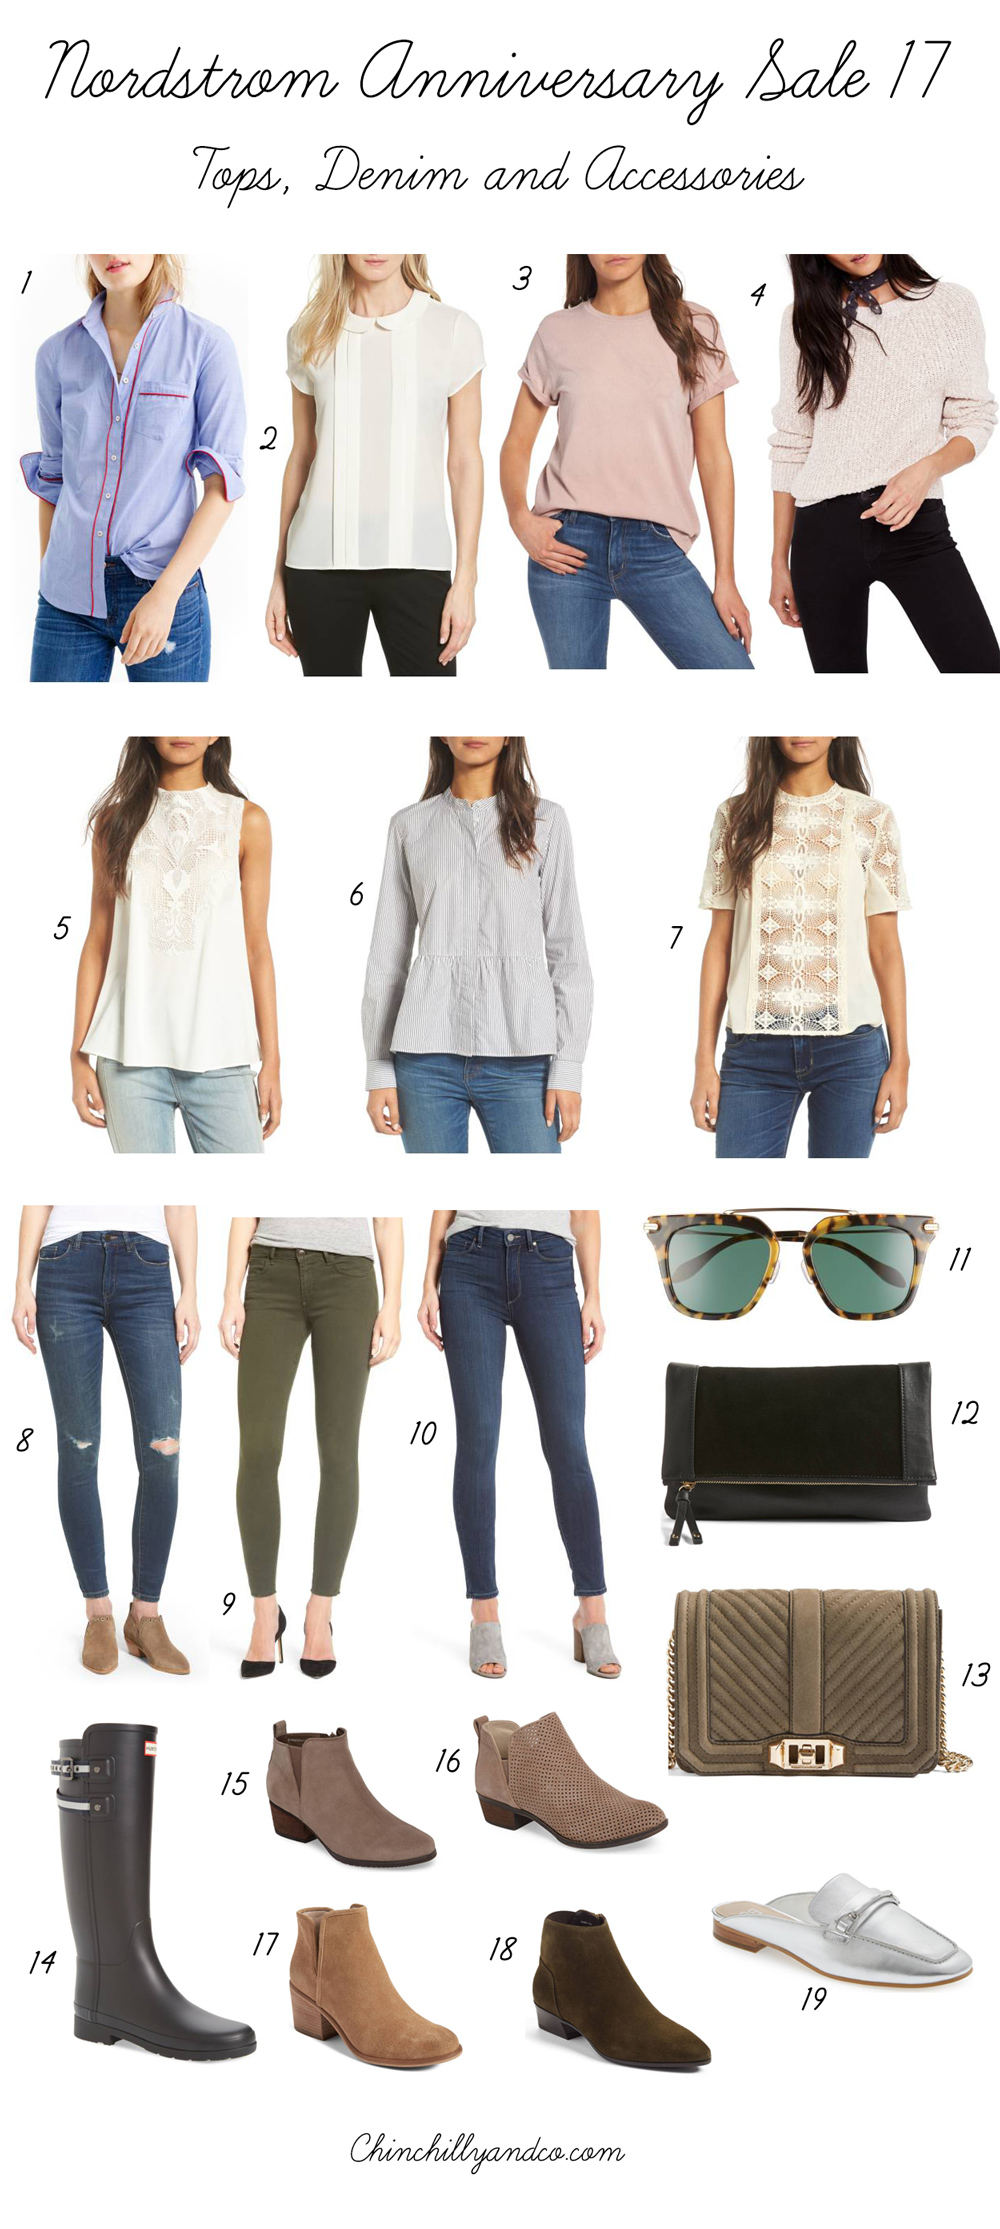 NordstromAnniversary17-Top,-Denim-and-Accessories